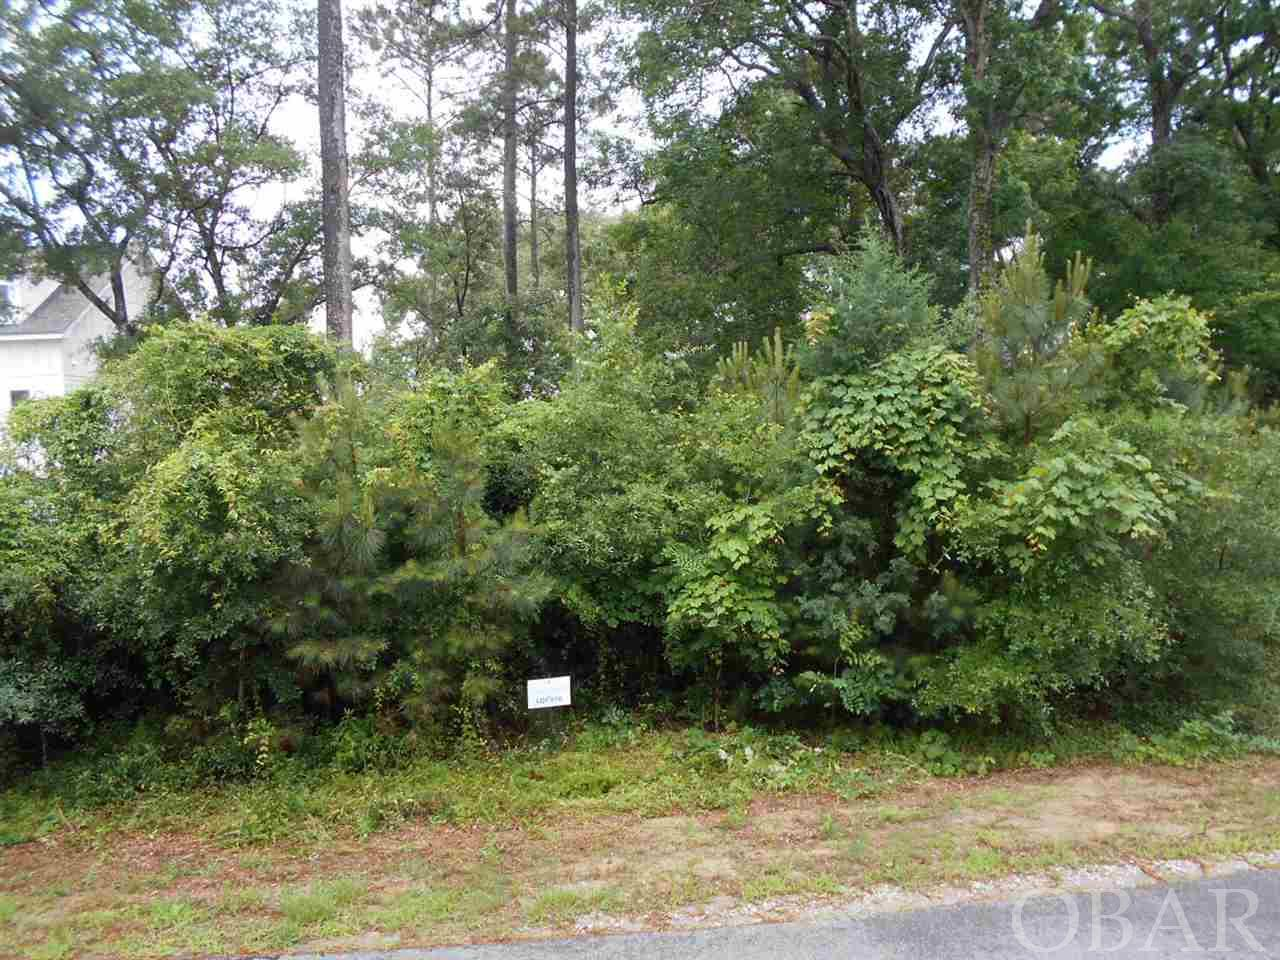 184 Sunrise Crossing Dr, Kill Devil Hills, NC 27948, ,Lots/land,For sale,Sunrise Crossing Dr,100671